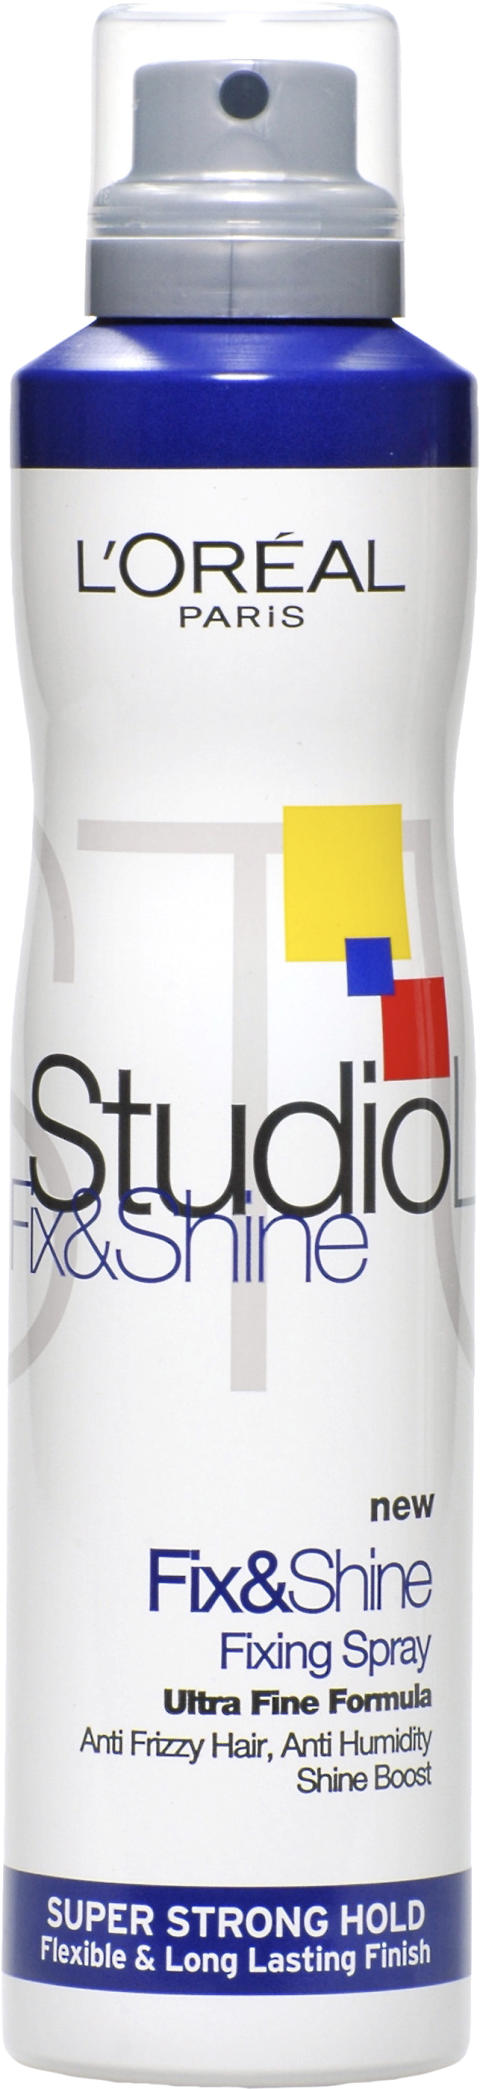 Studio Line Fix&Shine Spray,